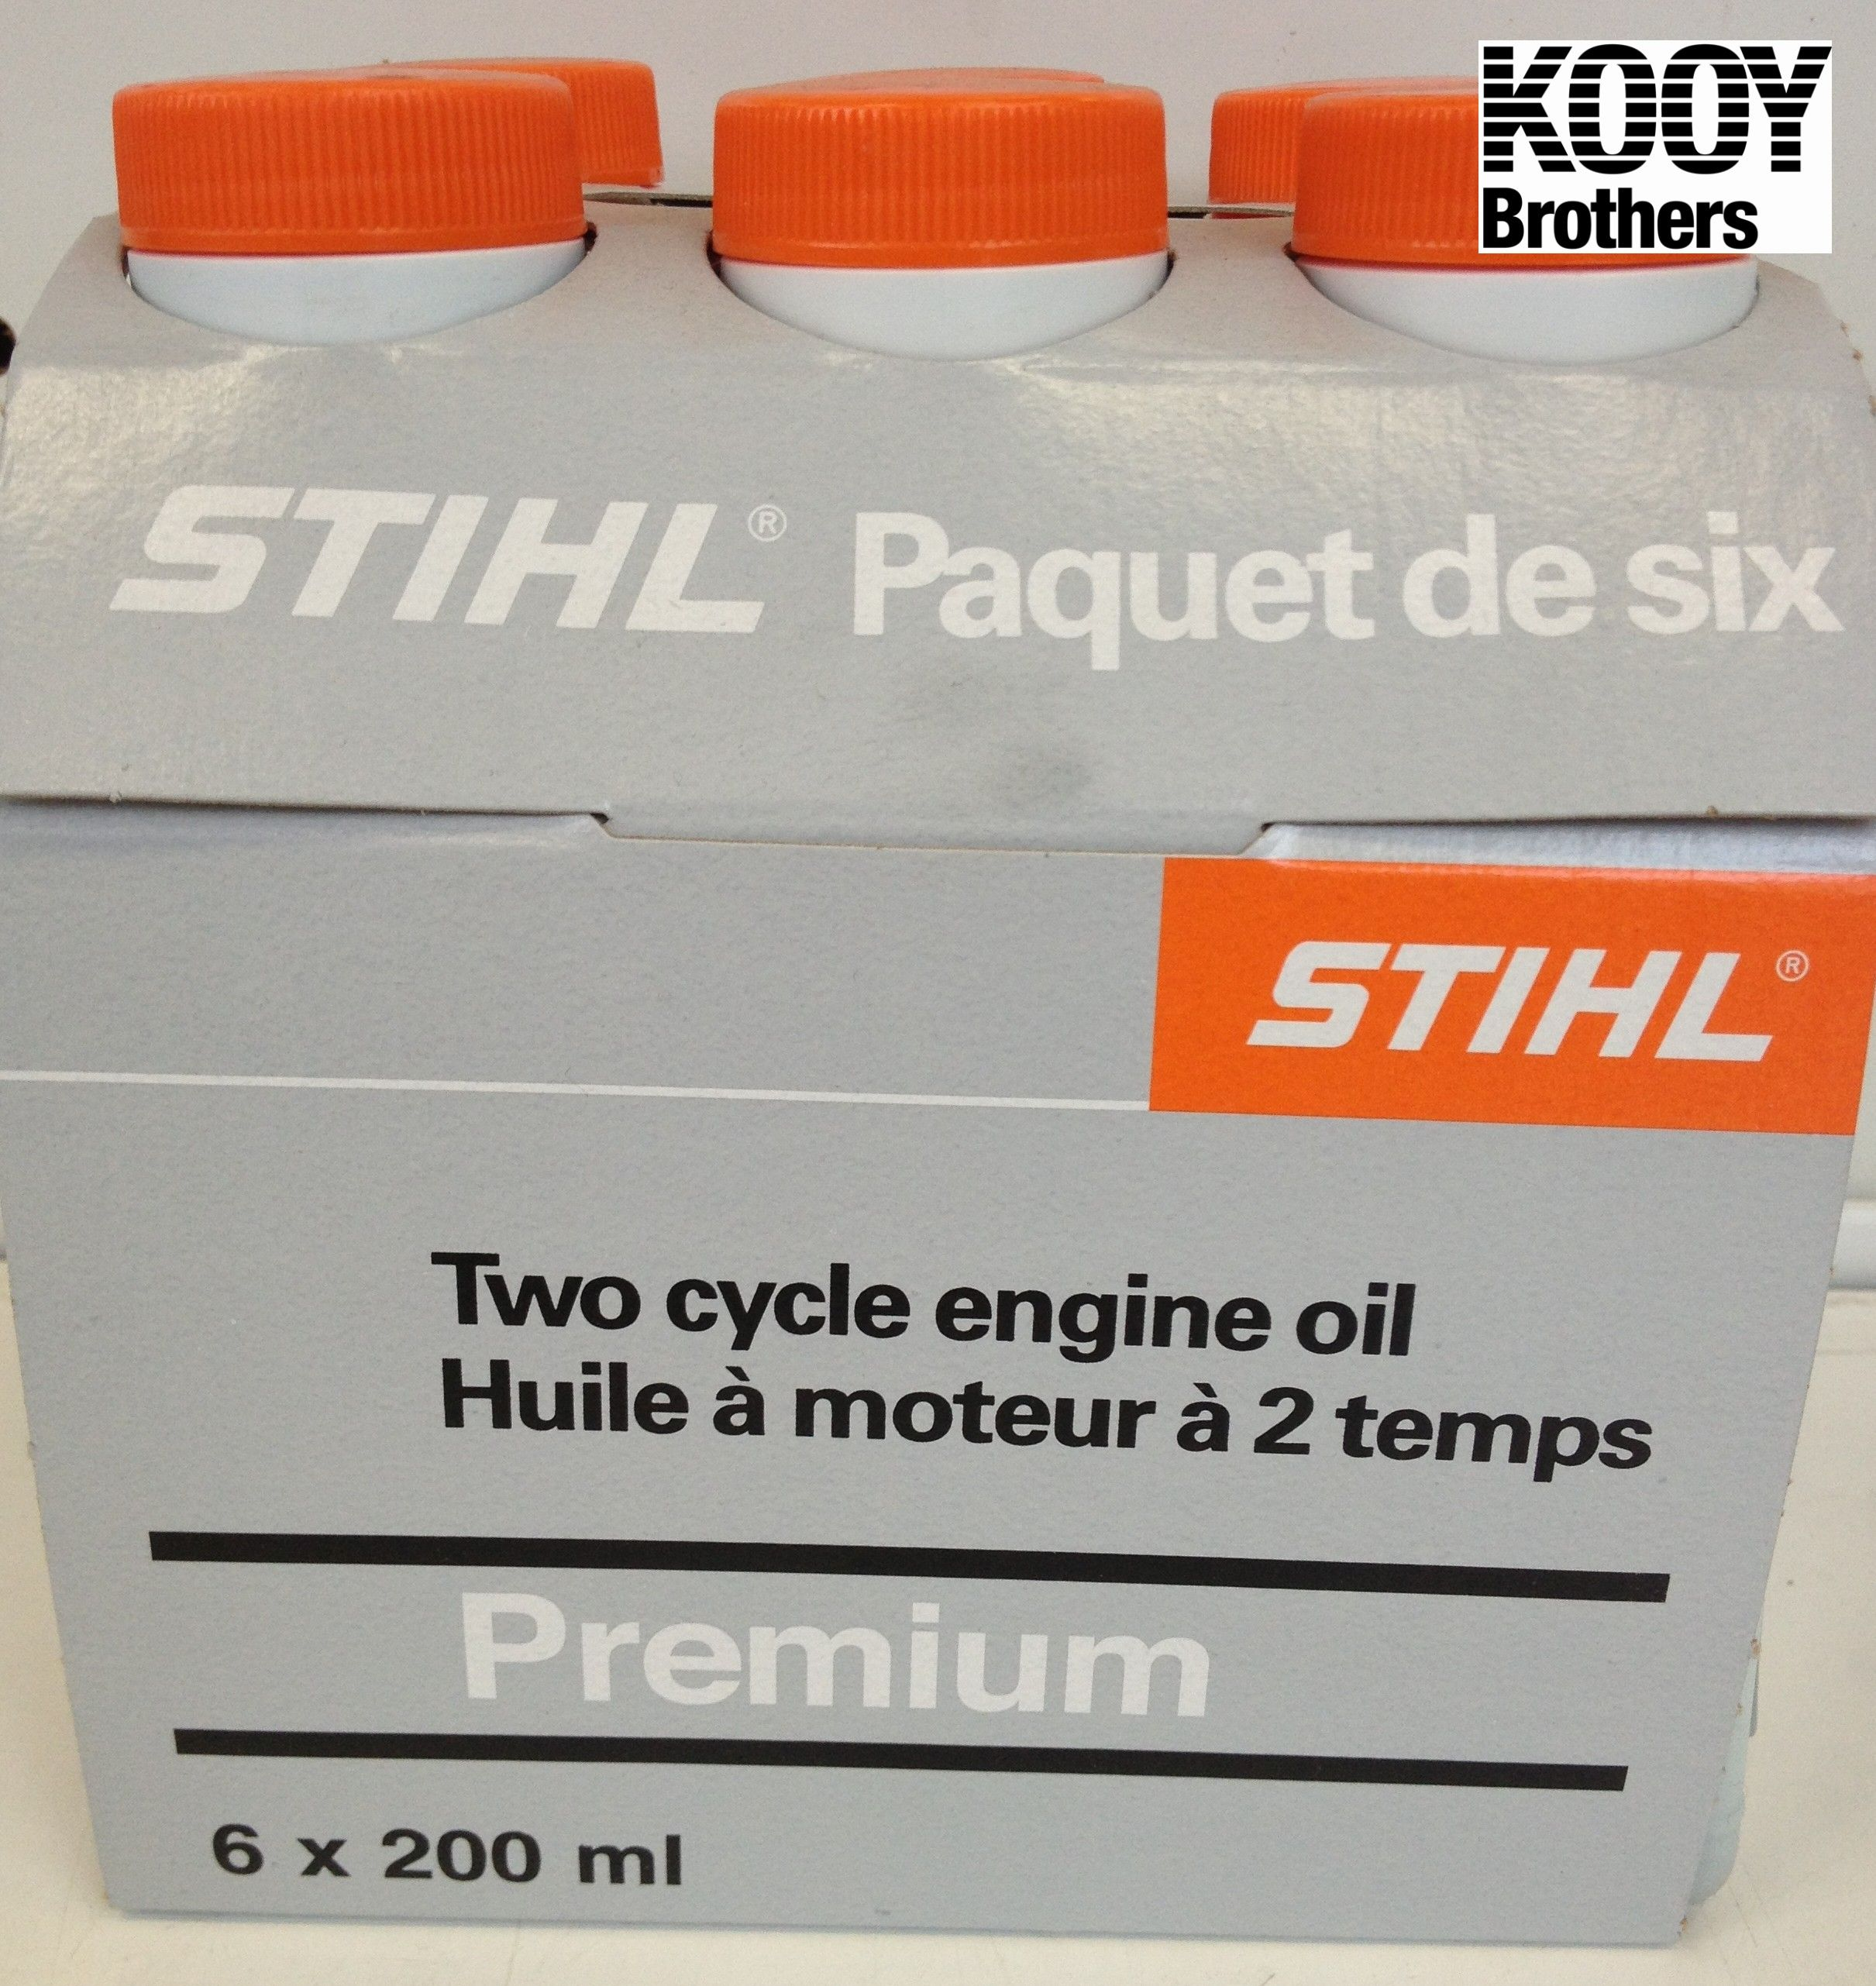 STIHL 6 pack of 200mL engine oil